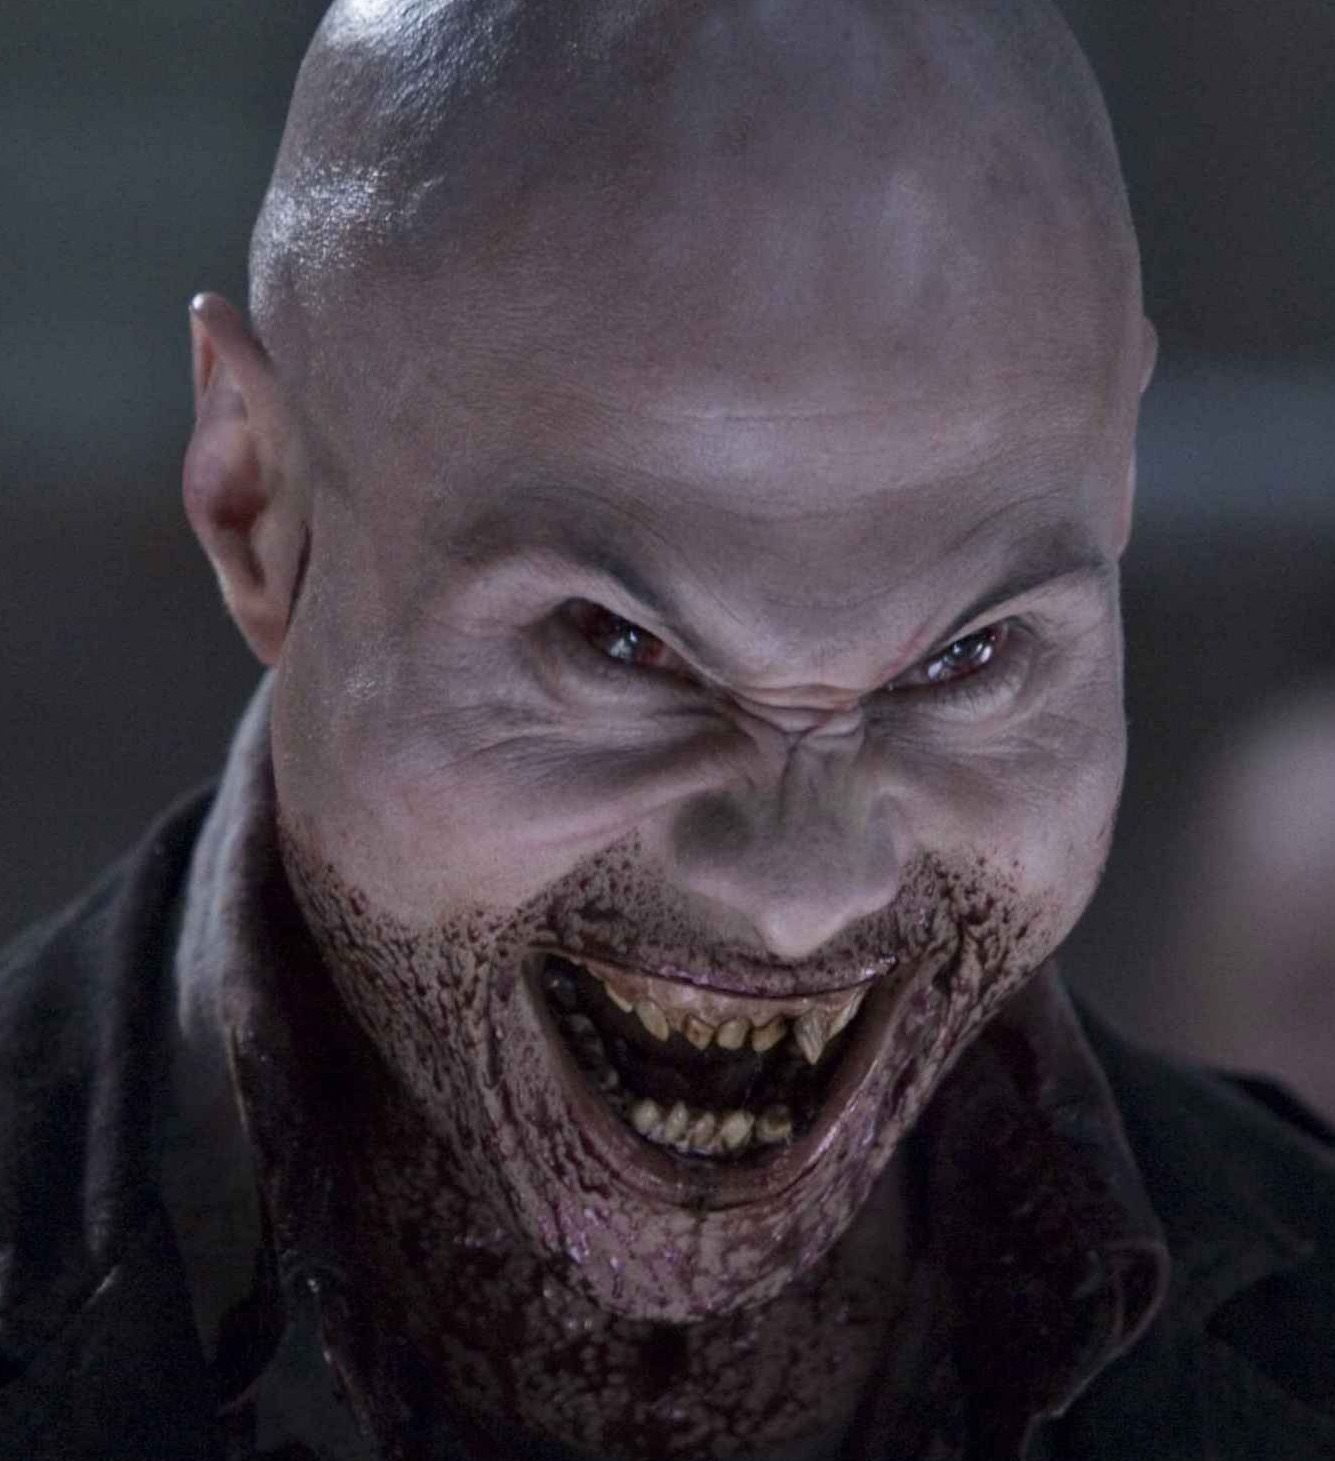 30 Days Of Night....ummm 30 seconds of night with this ...